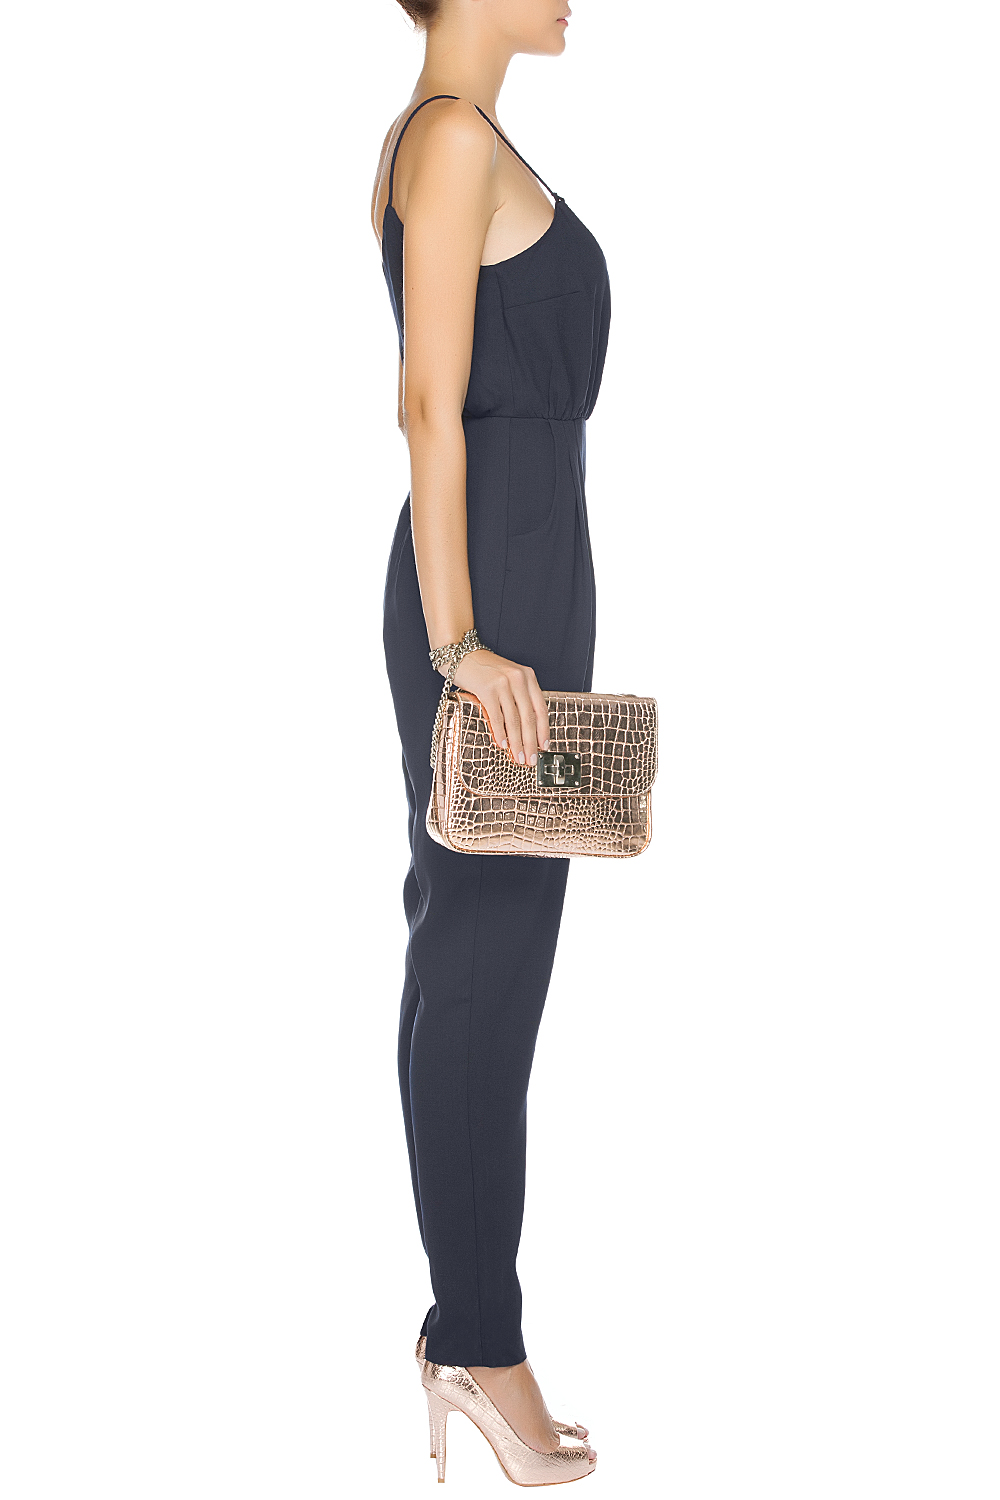 98b1b13ebc60 ... finders-keepers-the-someday-jumpsuit-dark-navy ...